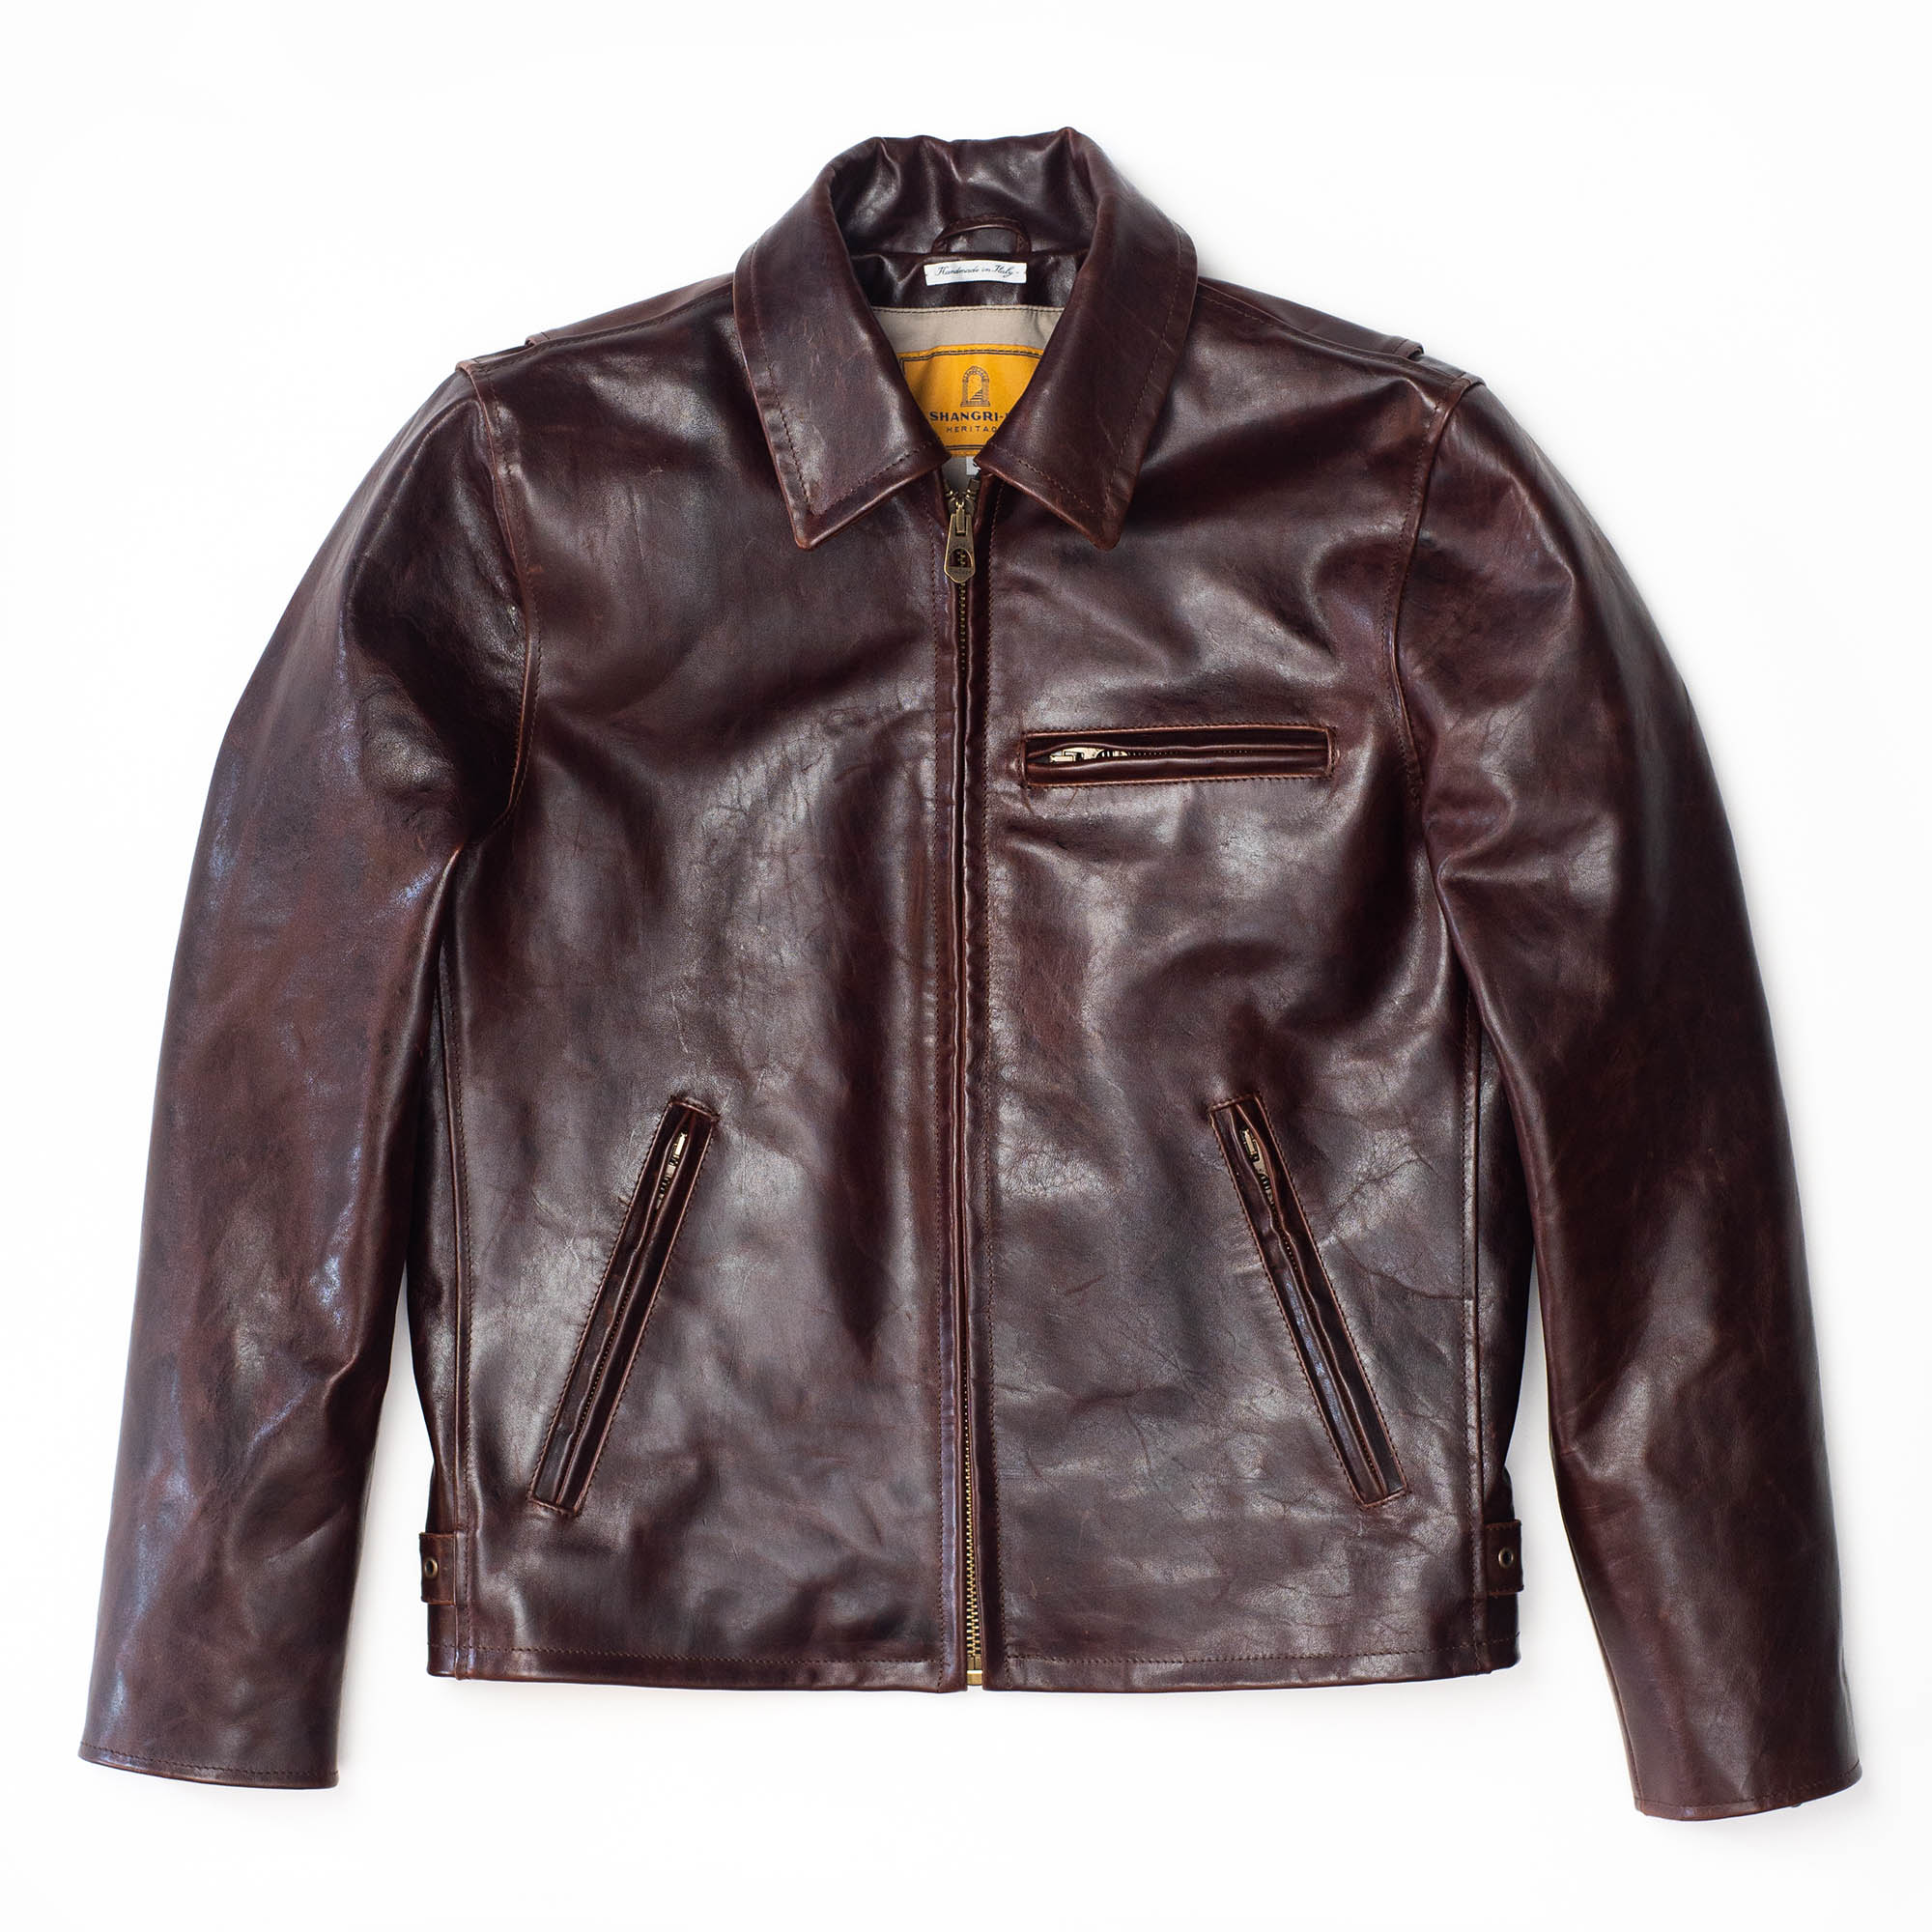 shangri-la-heritage-varenne-whiskey-horsehide-leather-jacket-still-life-front